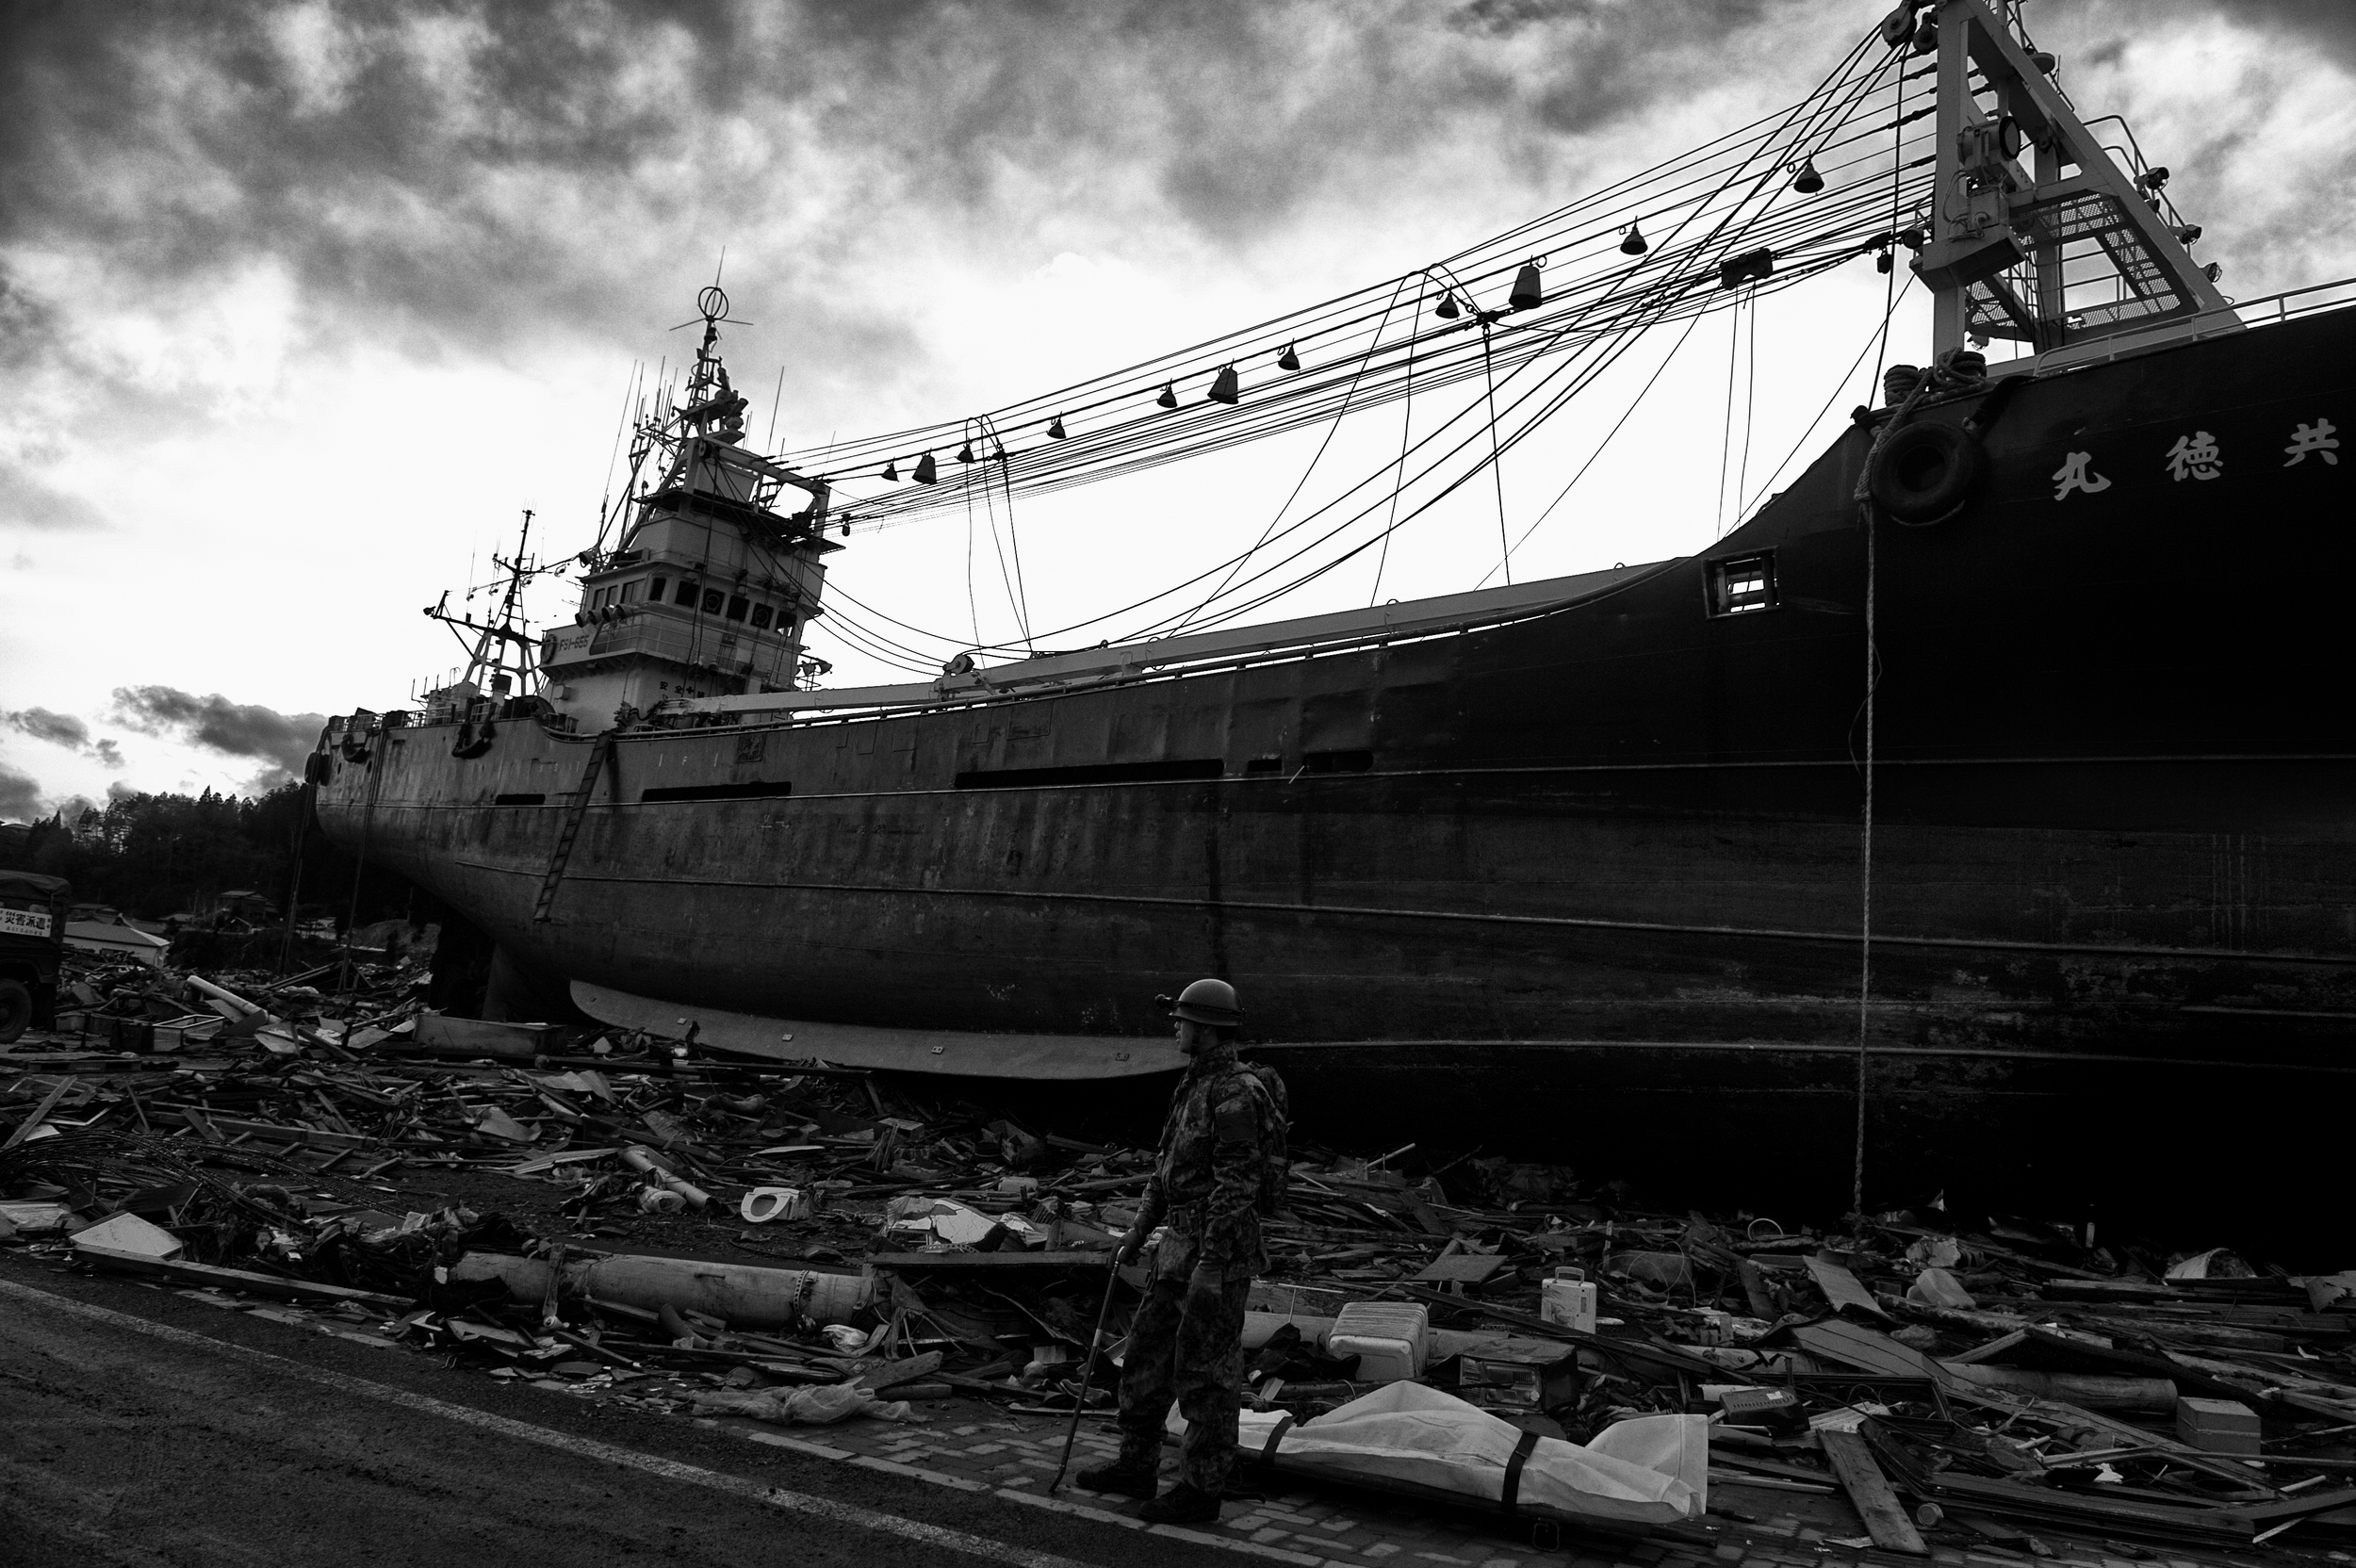 A Japanese soldier puts a casualty next to the   Kyotoku-maru fishing trawler that was swept inland during the tsunami that followed the 2011 Tōhoku earthquake and tsunami in the city of Kesennuma, Miyagi, Japan, March 26, 2011. (Photo/Mark Pearson)